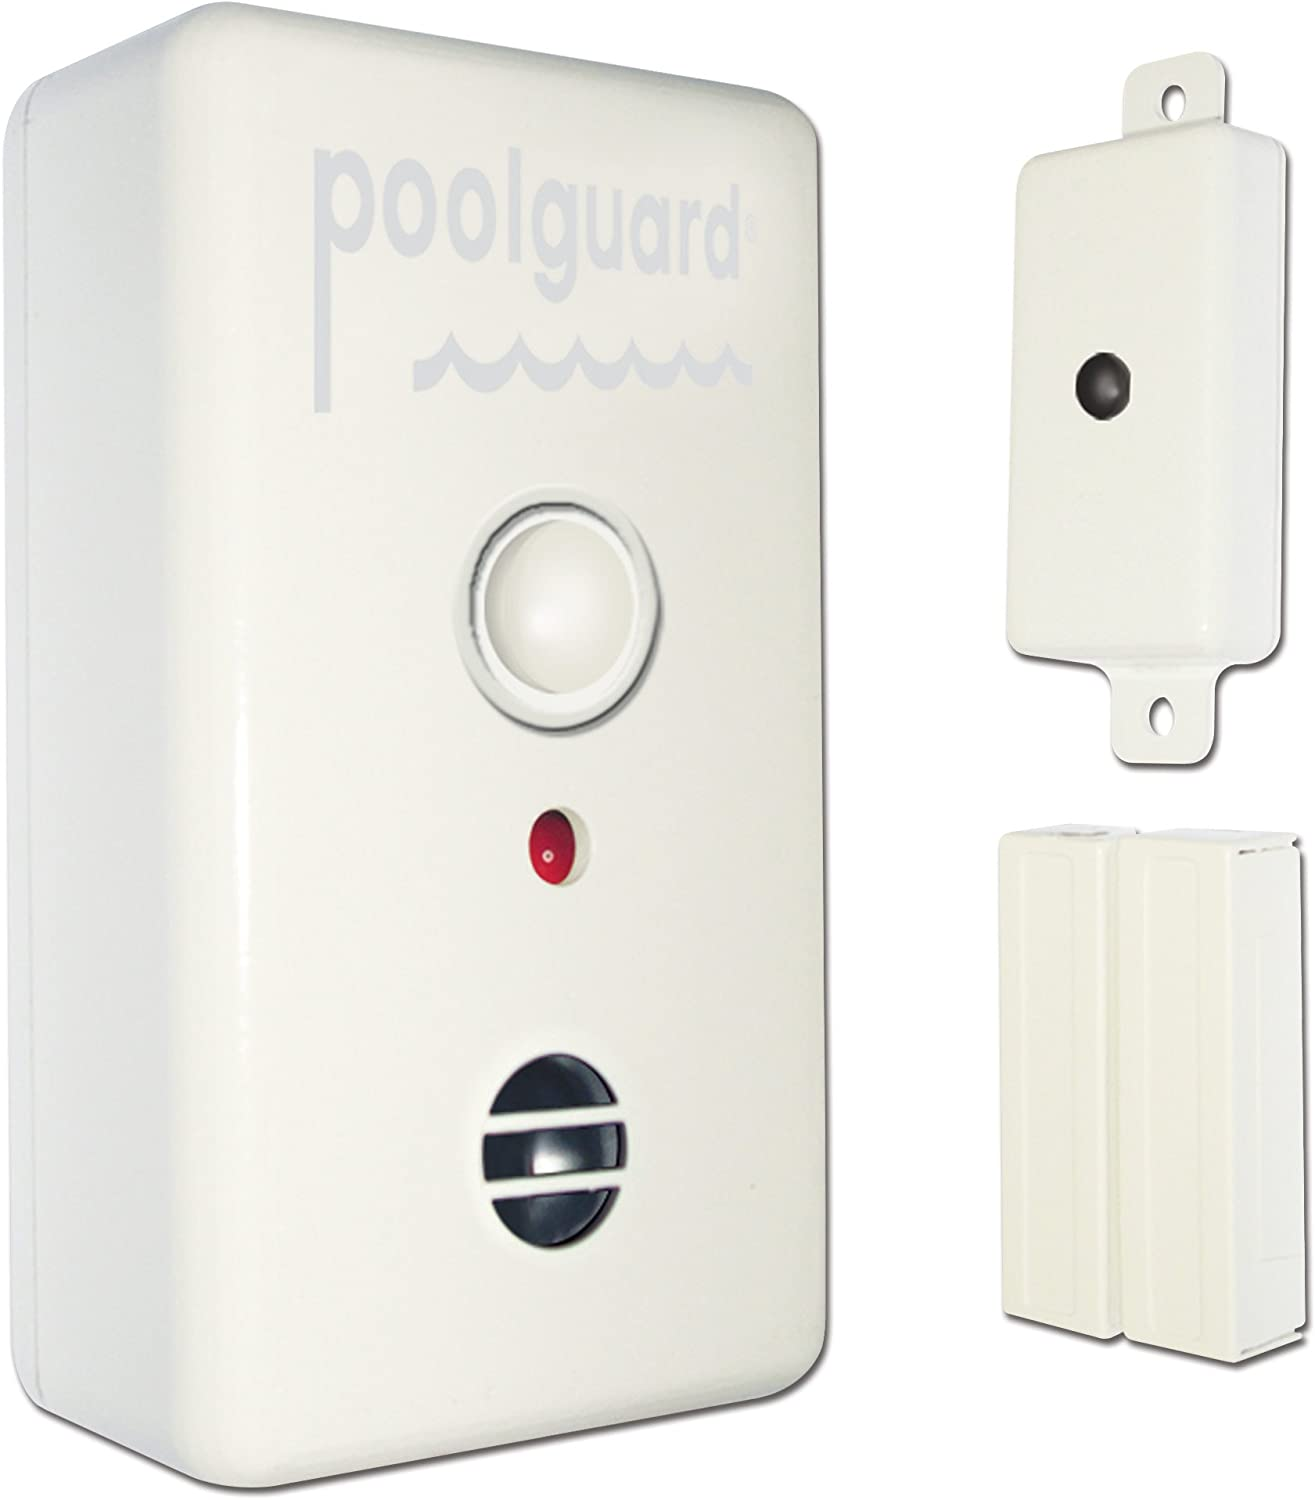 PoolGuard Pool Door & Gate Alarm with Transmitter